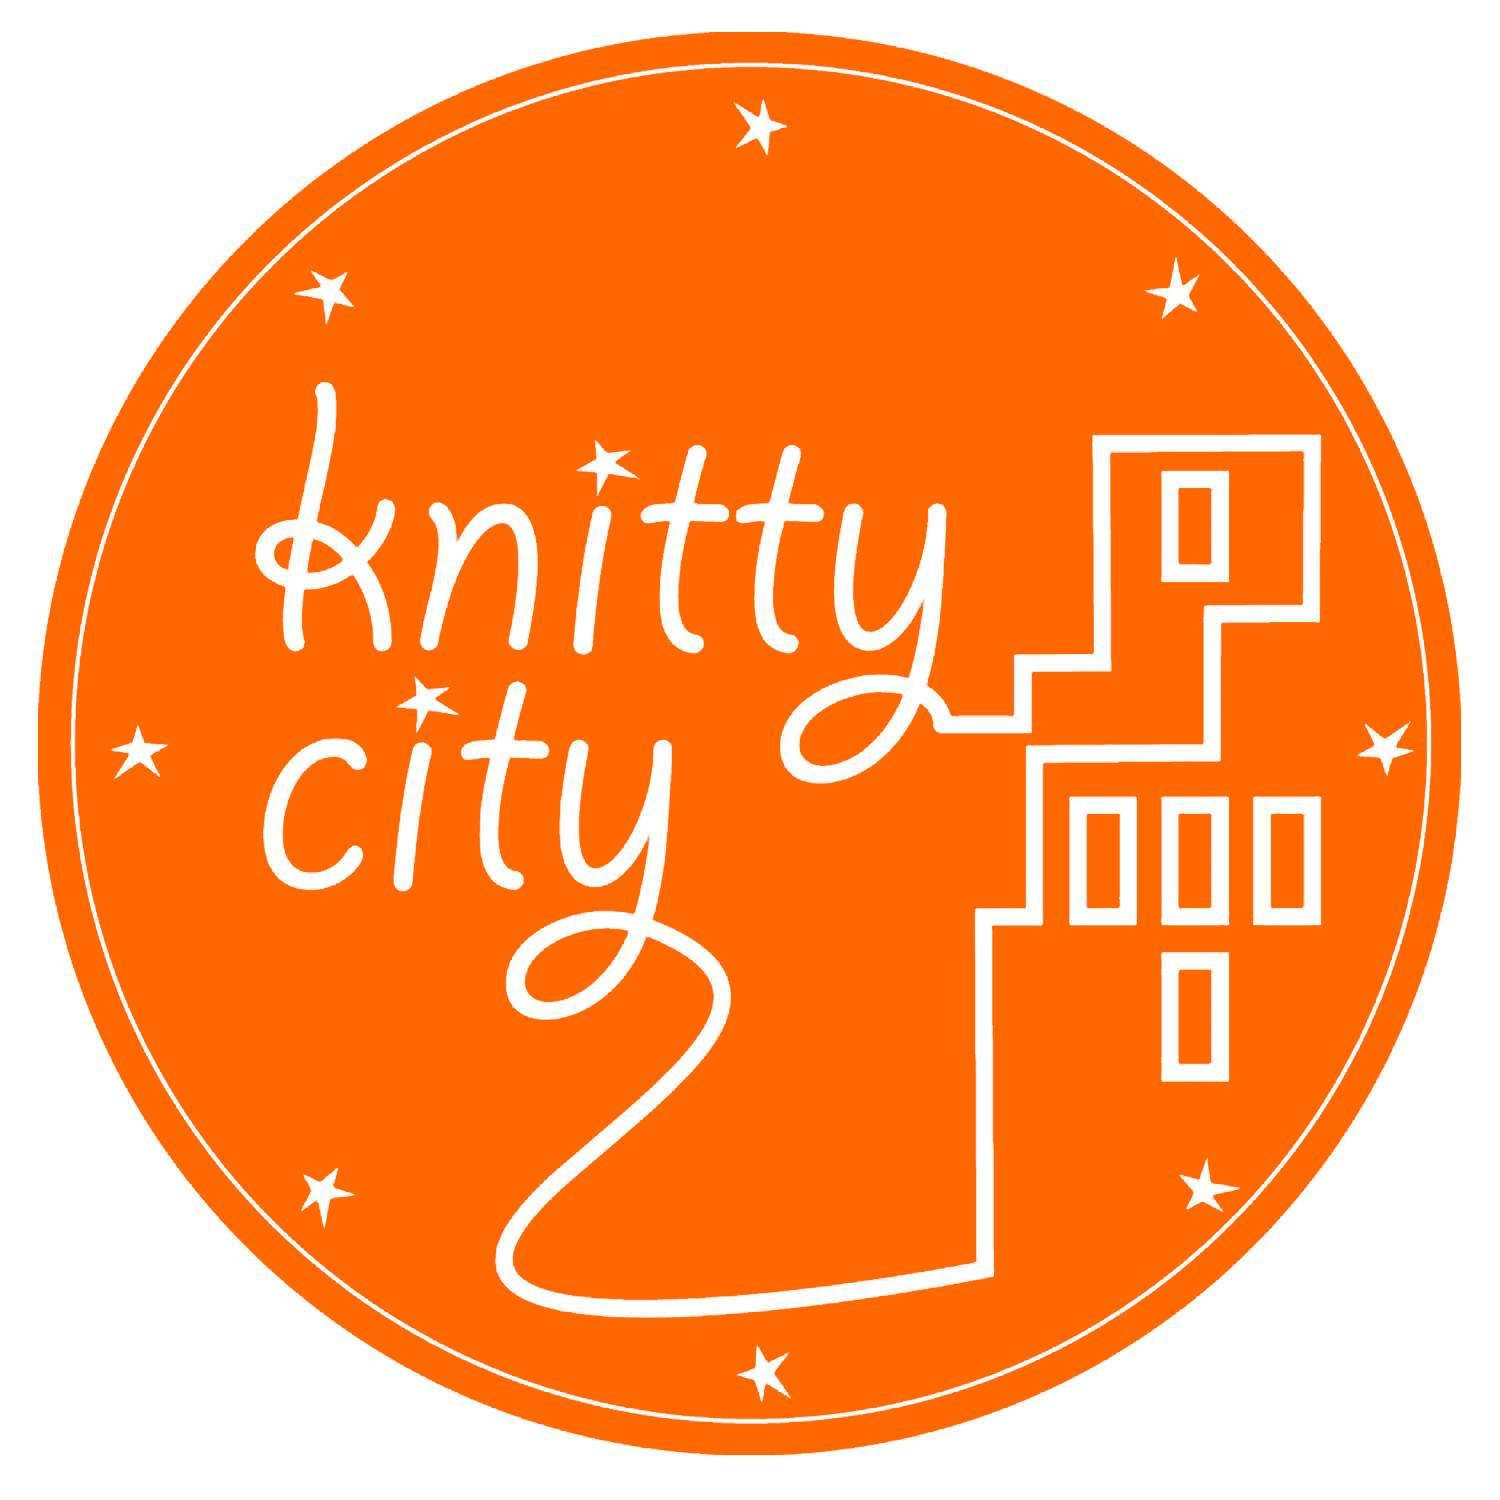 Knitty City is located in New York City, NY   Shop  -  Instagram  -  Blog